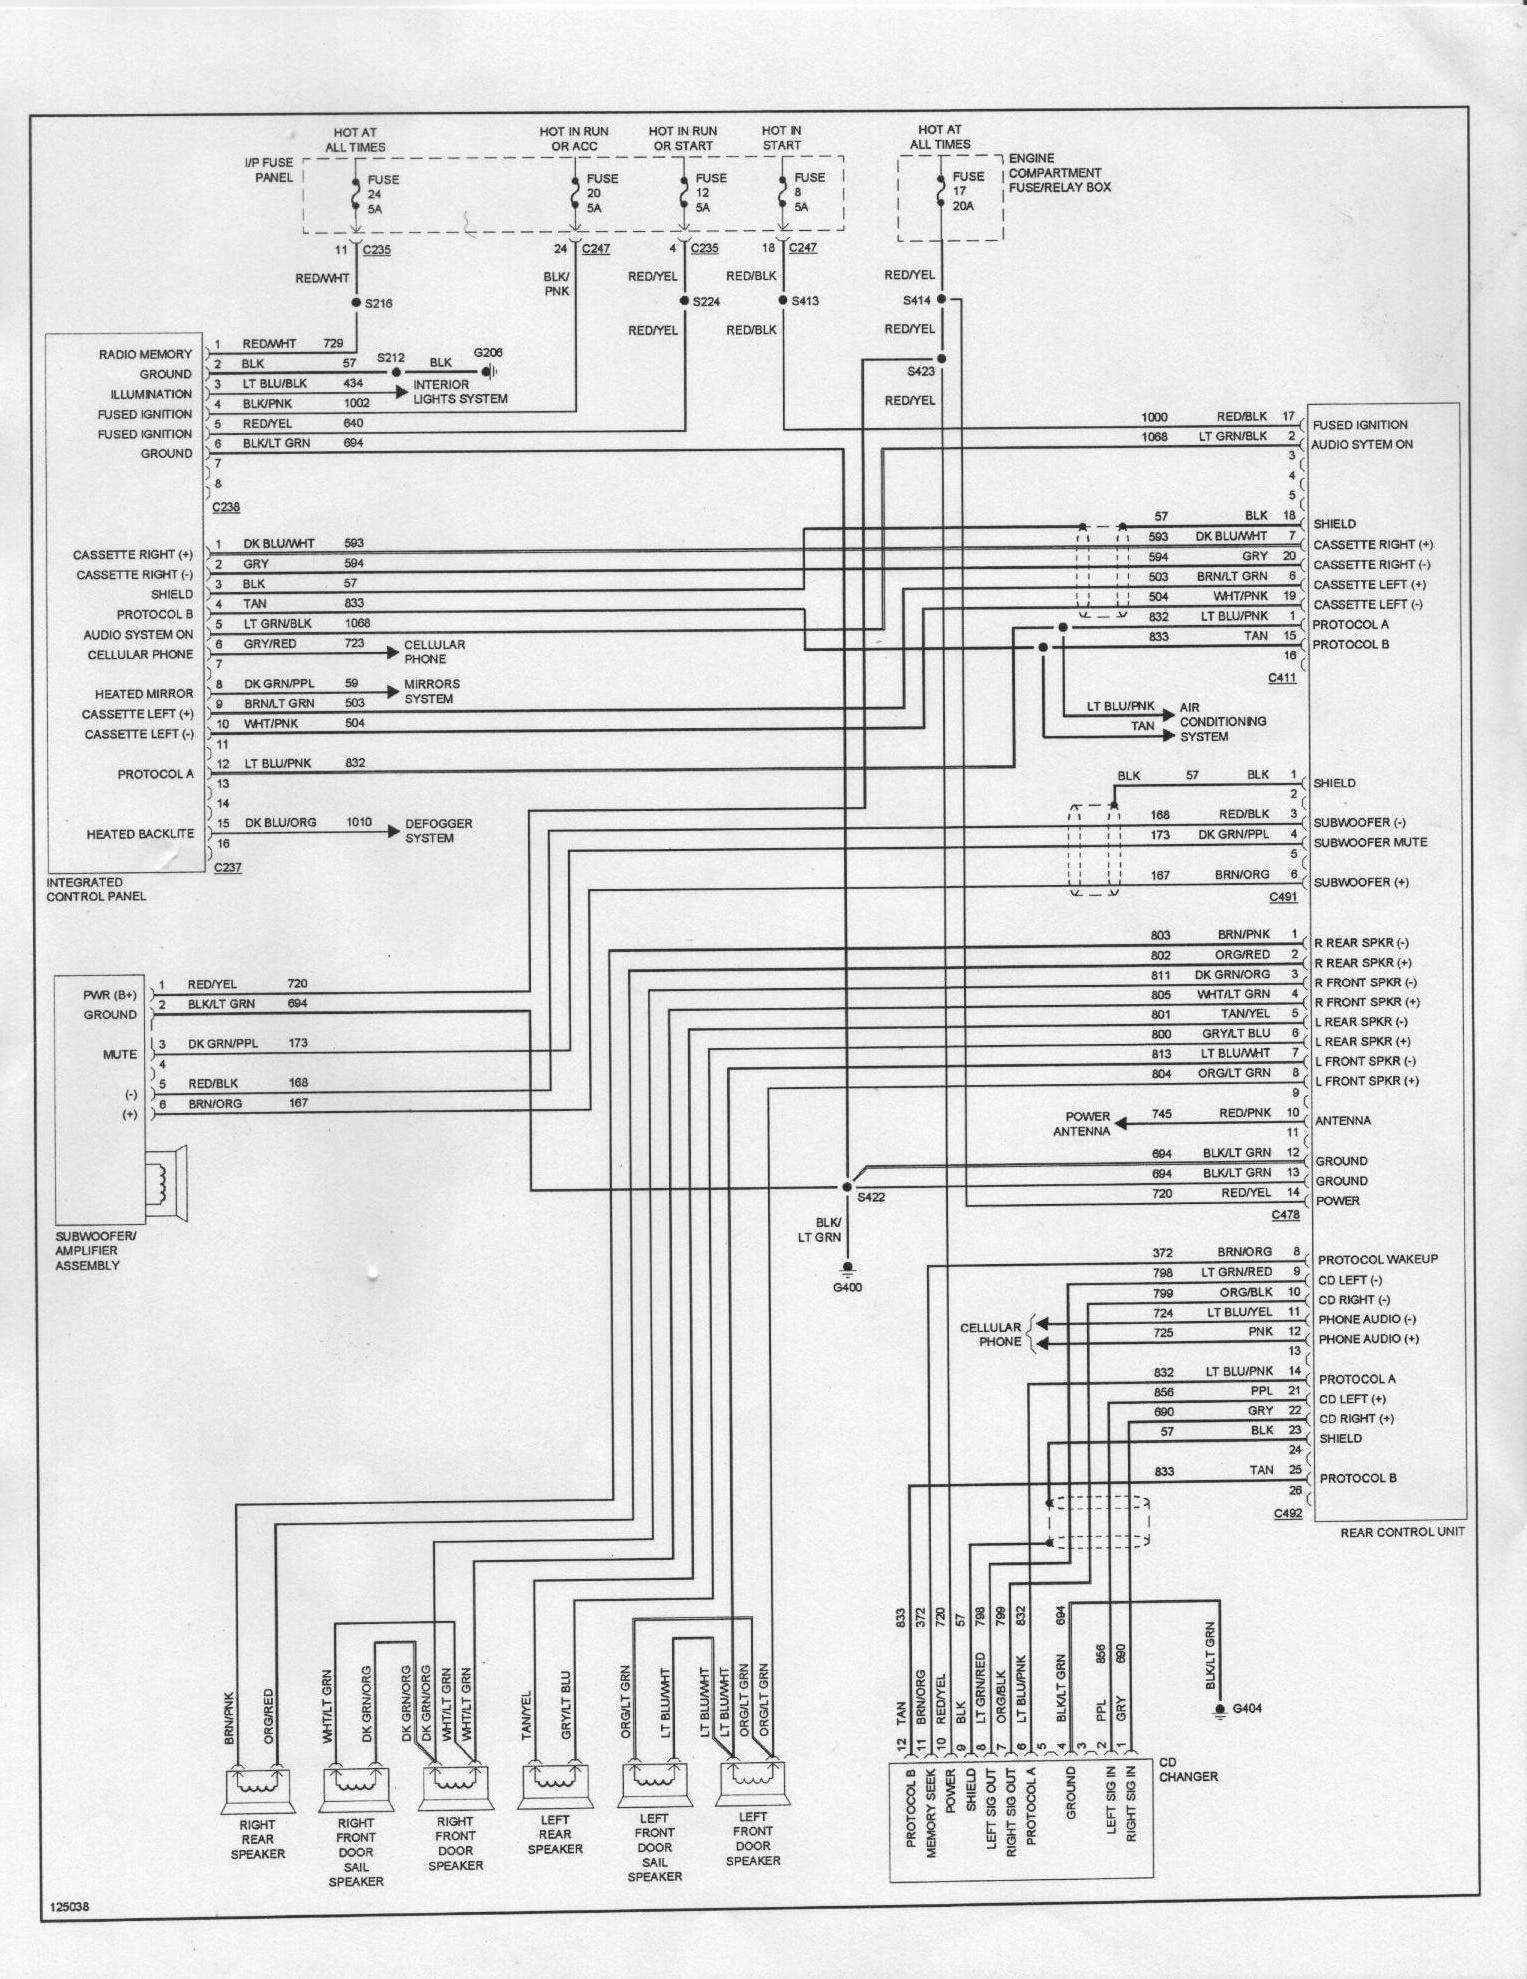 44917d1173064914 wiring diagram ford taurus diagram96 2006 ford taurus wiring diagram wiring diagram 2006 ford taurus 2003 ford taurus wiring diagram at reclaimingppi.co